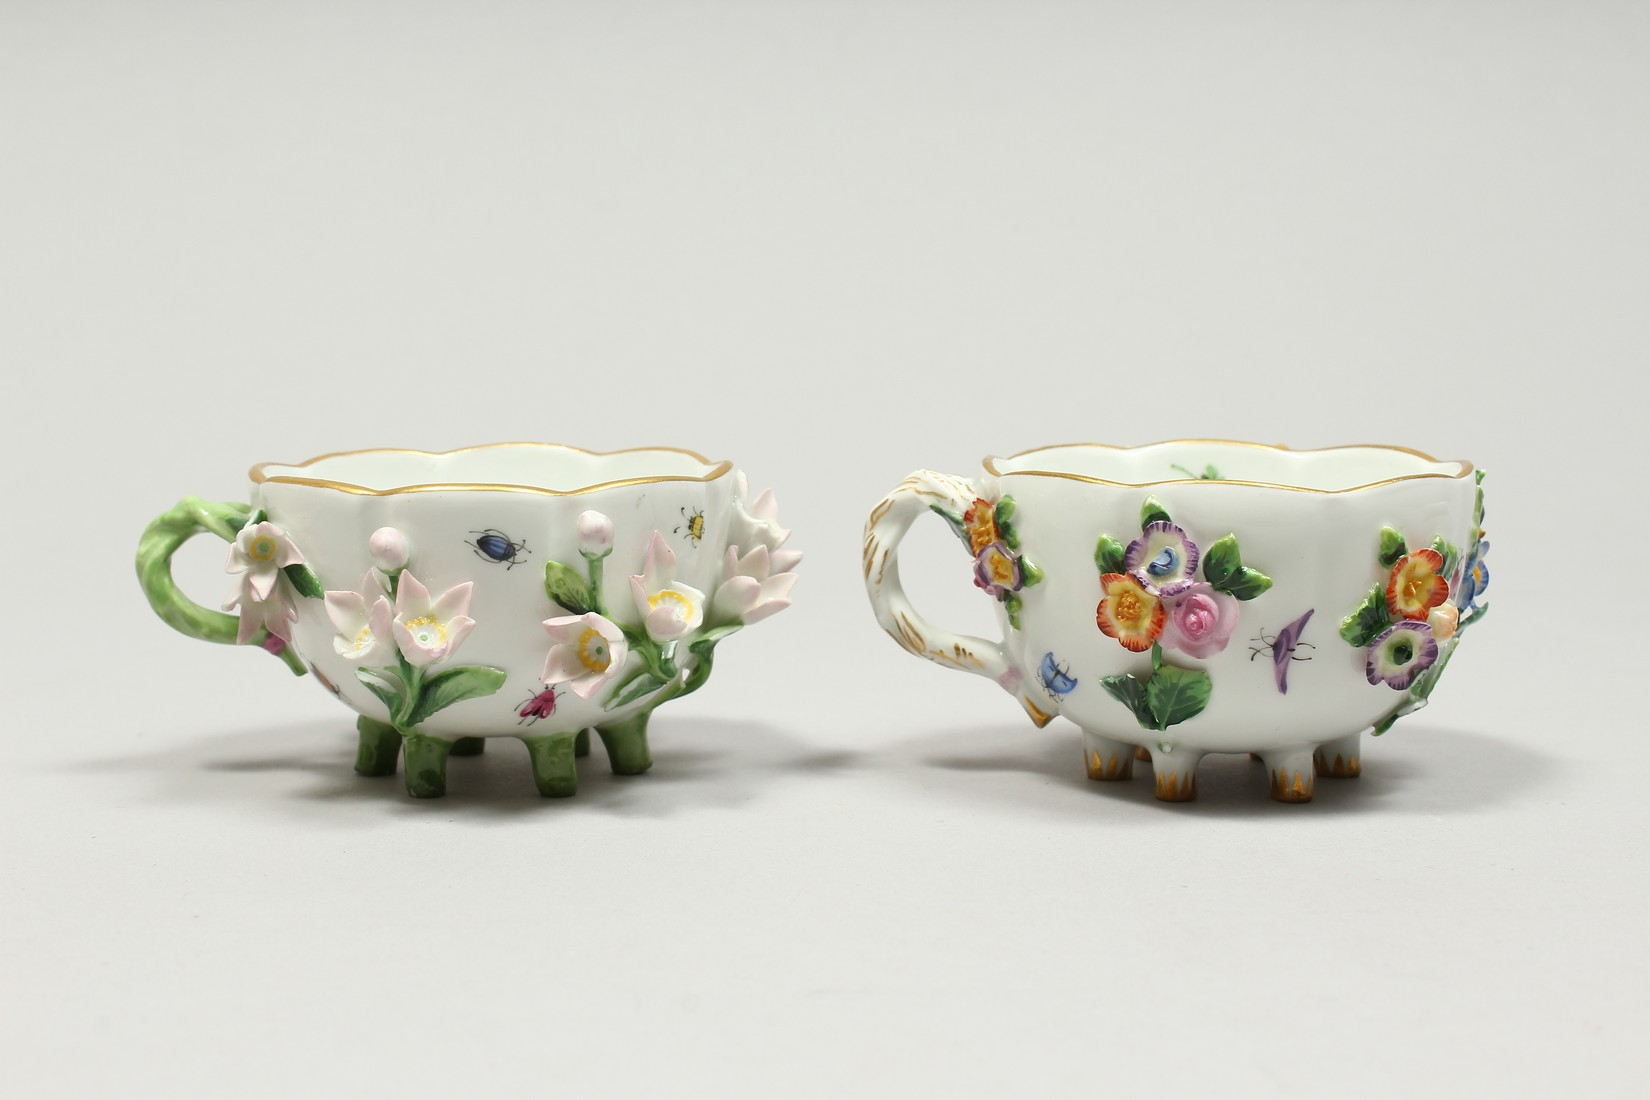 TWO MEISSEN PORCELAIN CUPS AND SAUCERS AND A SAUCER, encrusted with flowers and painted with - Image 2 of 16